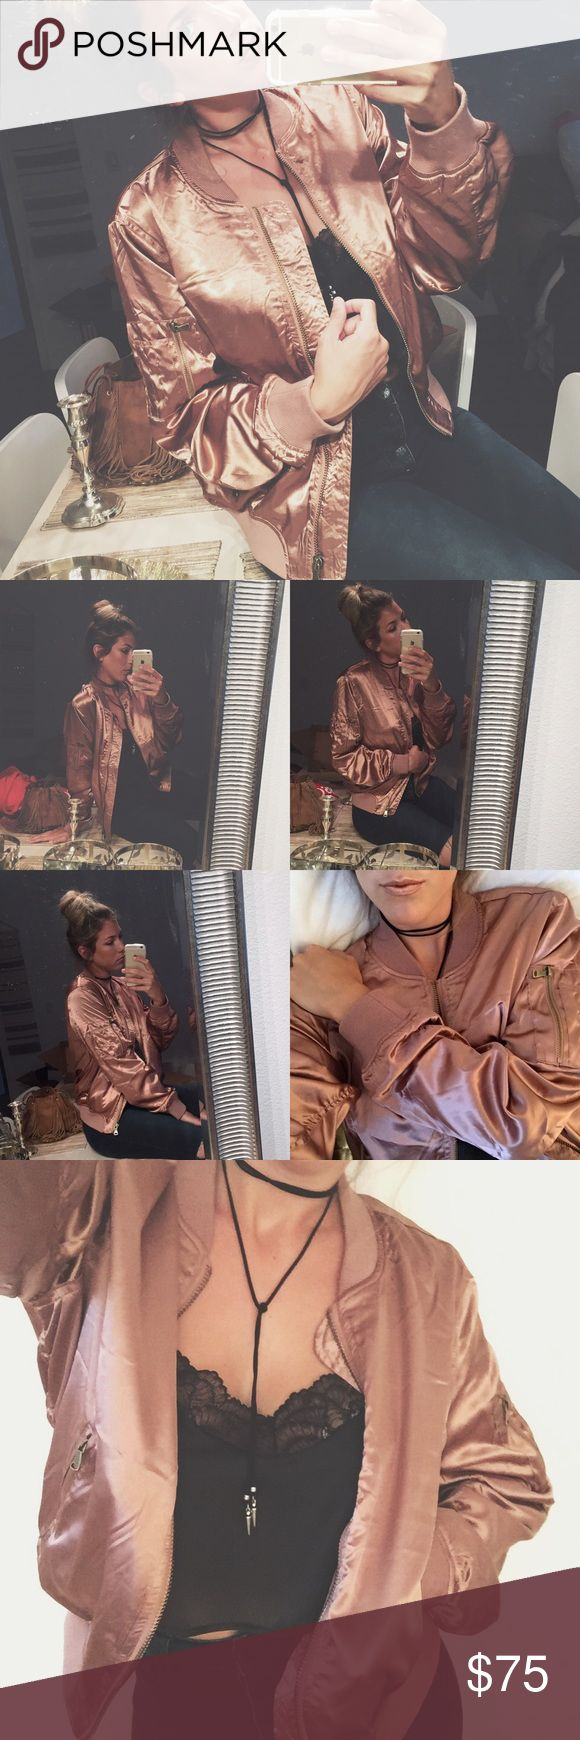 ROSE GOLD SATIN SILK BOMBER JACKET Words cannot express how obsessed I am with this stunning rose gold bomber! It is literally PERFECTION. The perfect jacket for the season, super versatile & soooo comfy/easy to wear. Team yours w/ some distressed jeans & some super high pumps or dress it down for casual wear w/ your favorite sunnies, black leggings & sneakers. This style is seen on many celebs & this gorgeous rose gold color is rare & hard to find so pick this baby up while you can…